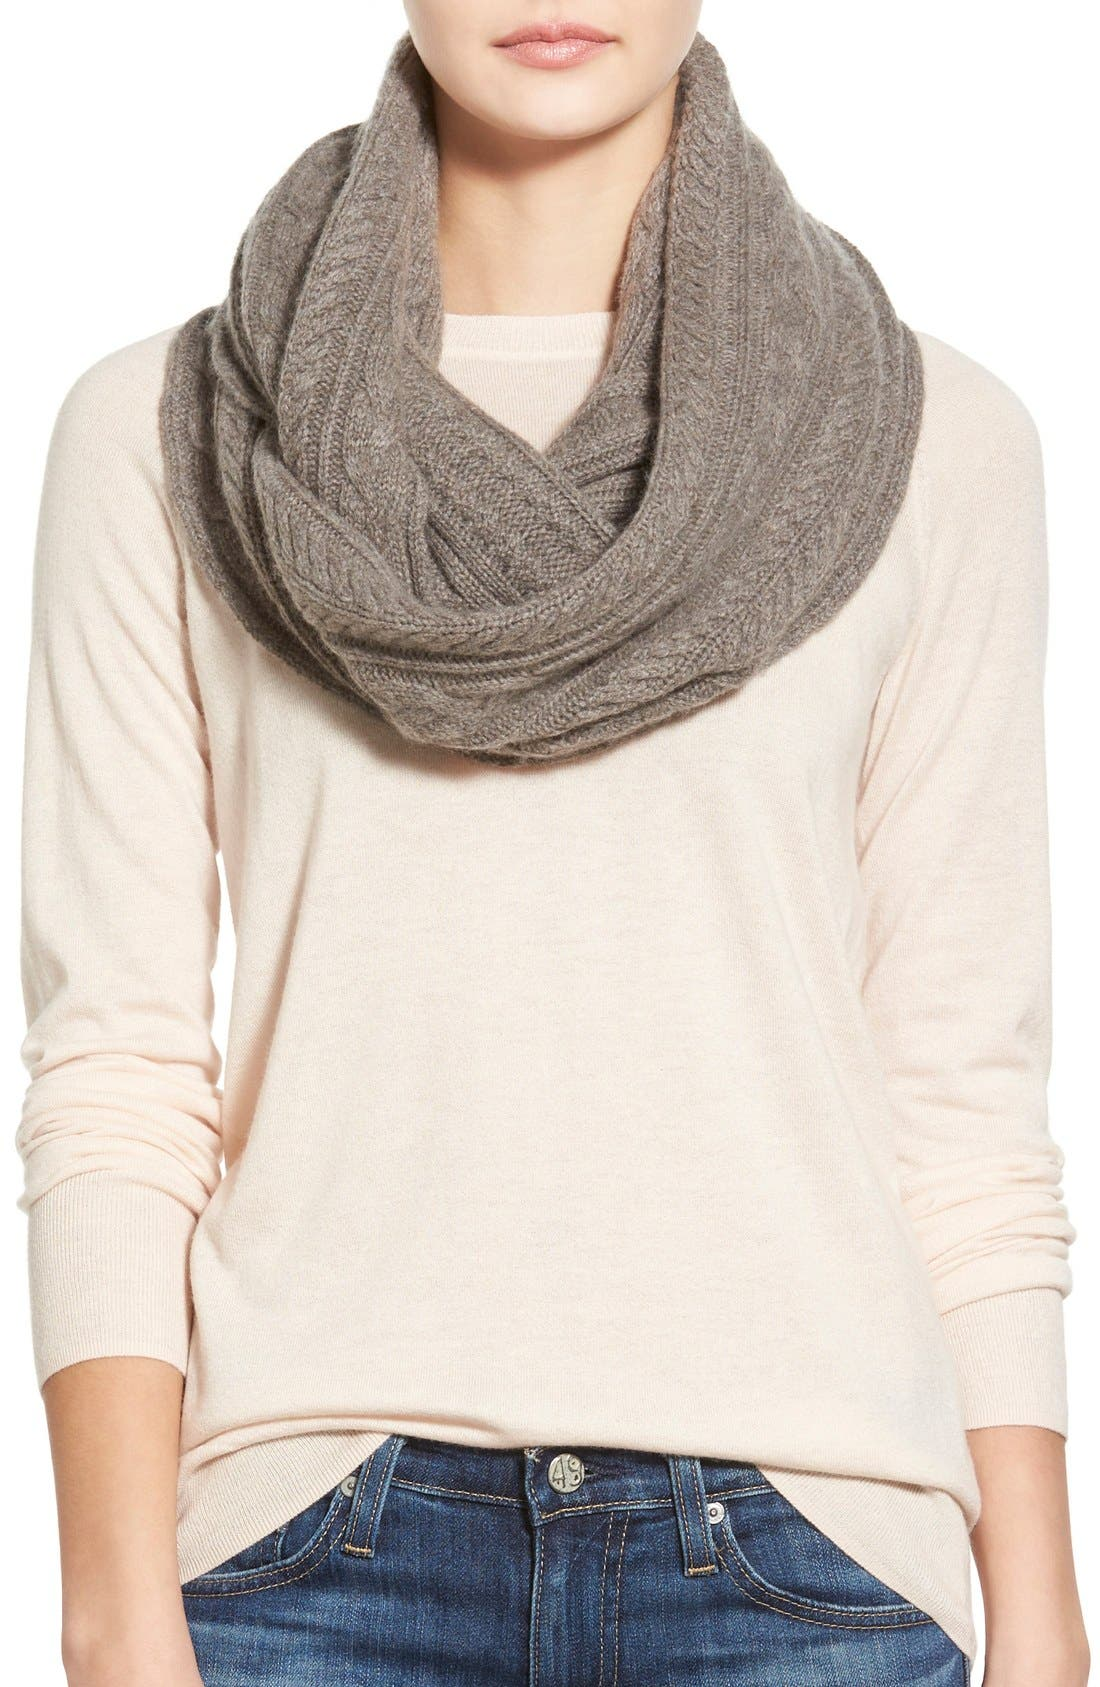 Main Image - James Perse Cashmere Infinity Scarf